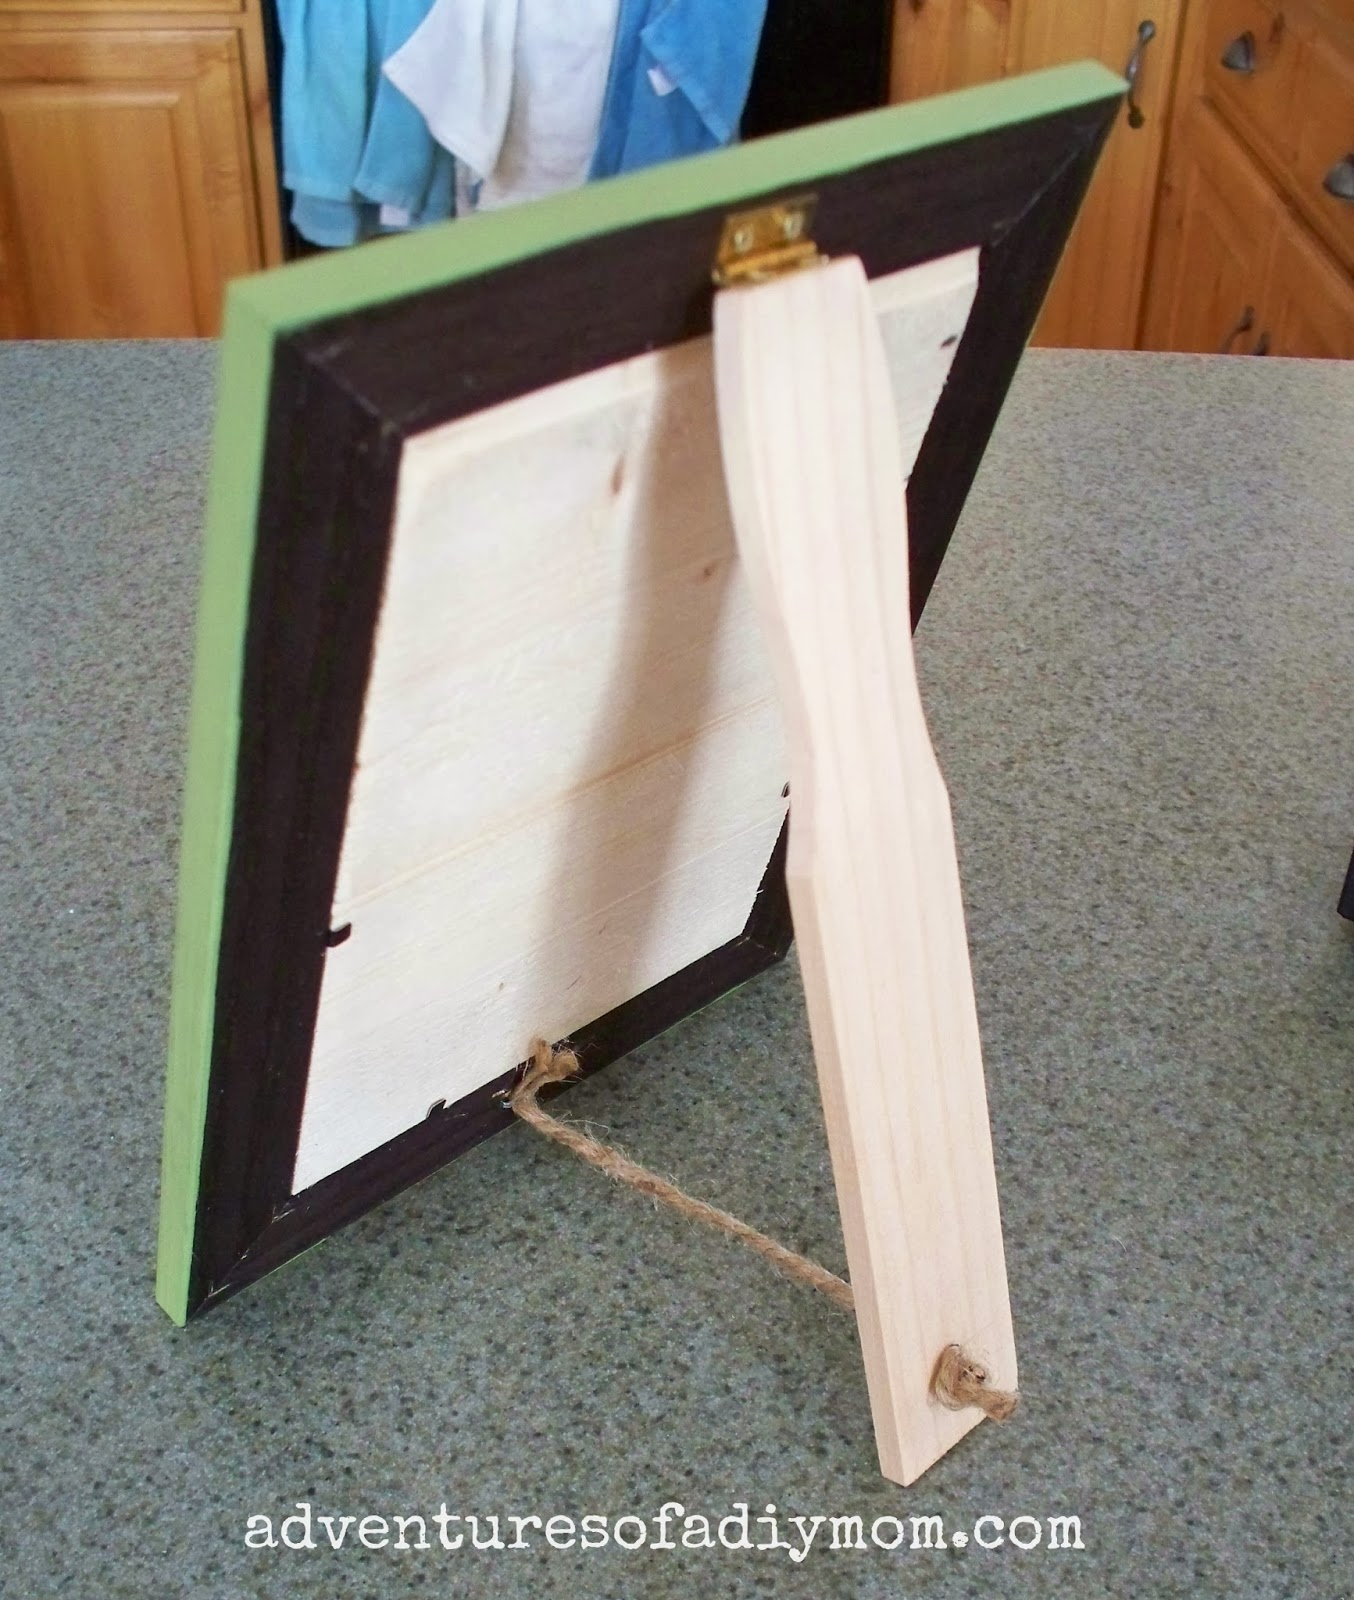 Glasses Frame Repair Diy : How to Make a Beadboard Picture Frame - Adventures of a ...